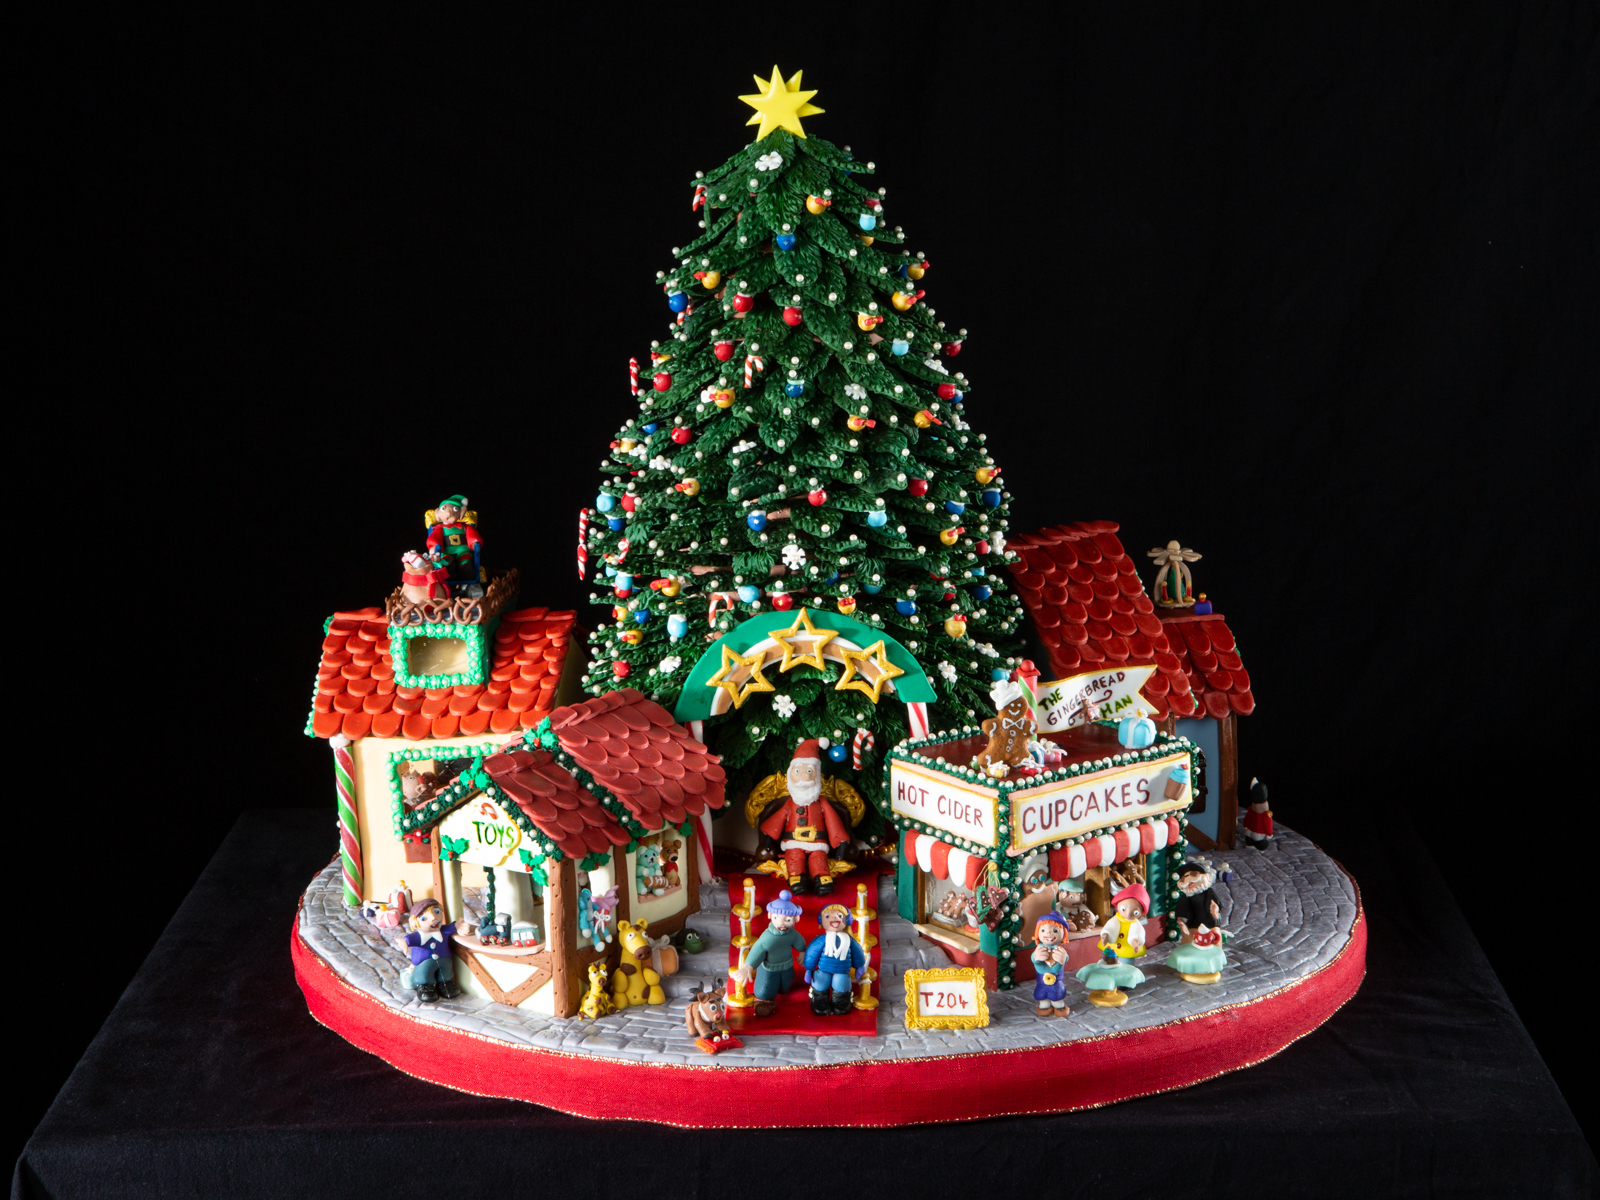 Christmas village National Gingerbread House Competition entry